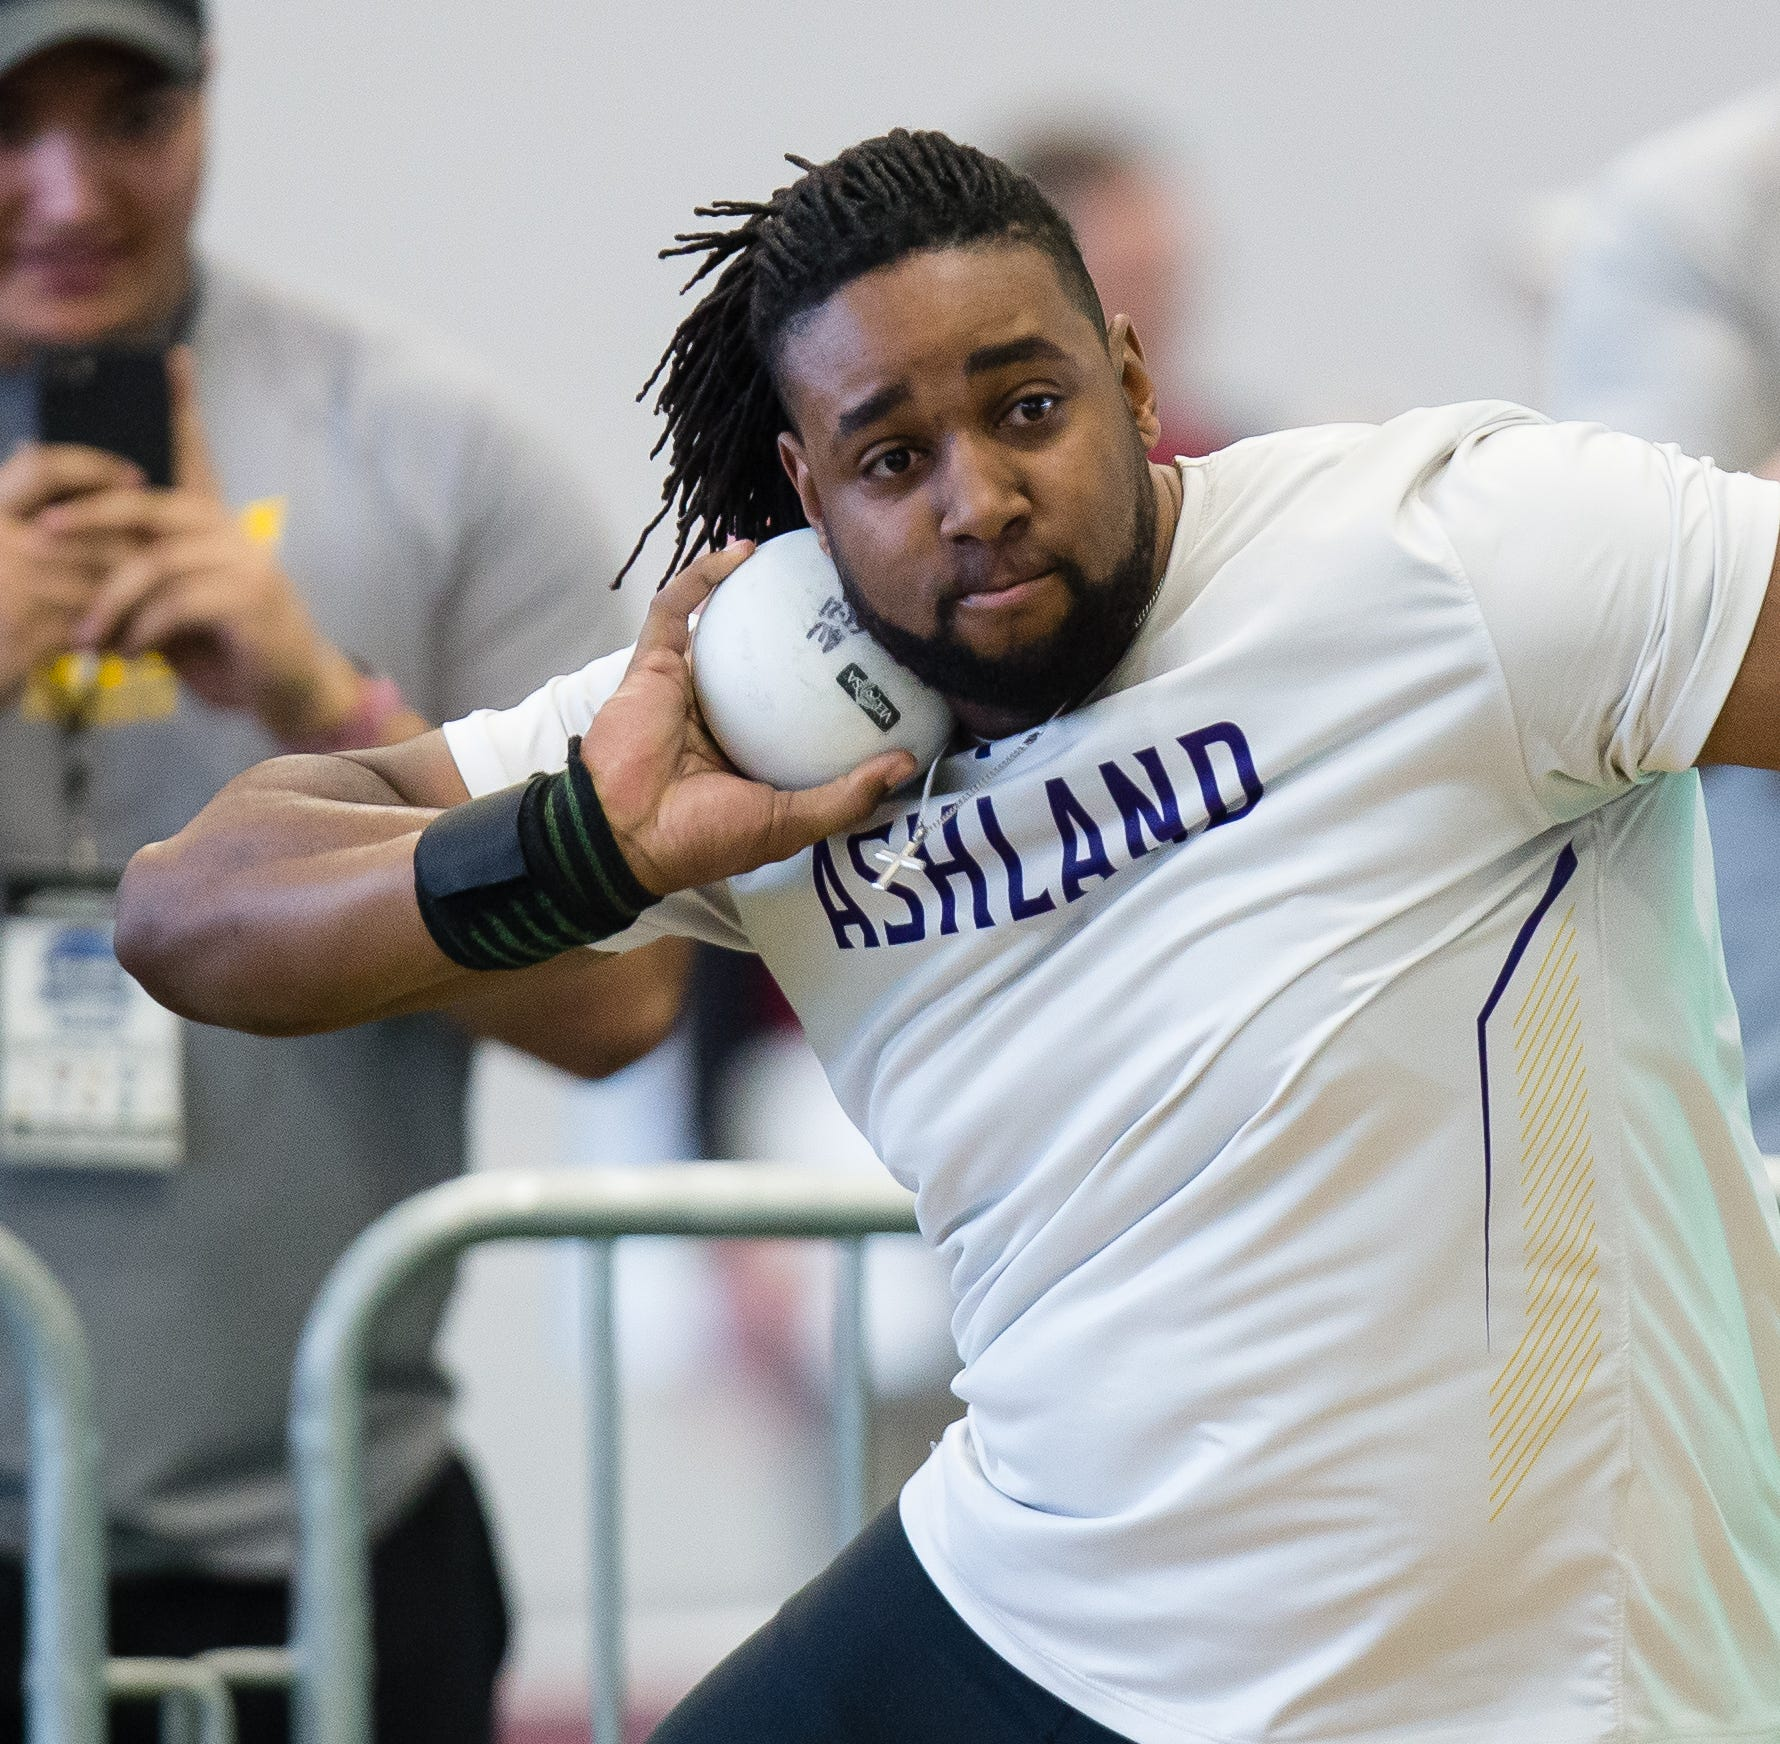 National champs: AU Eagles win indoor track title by .01